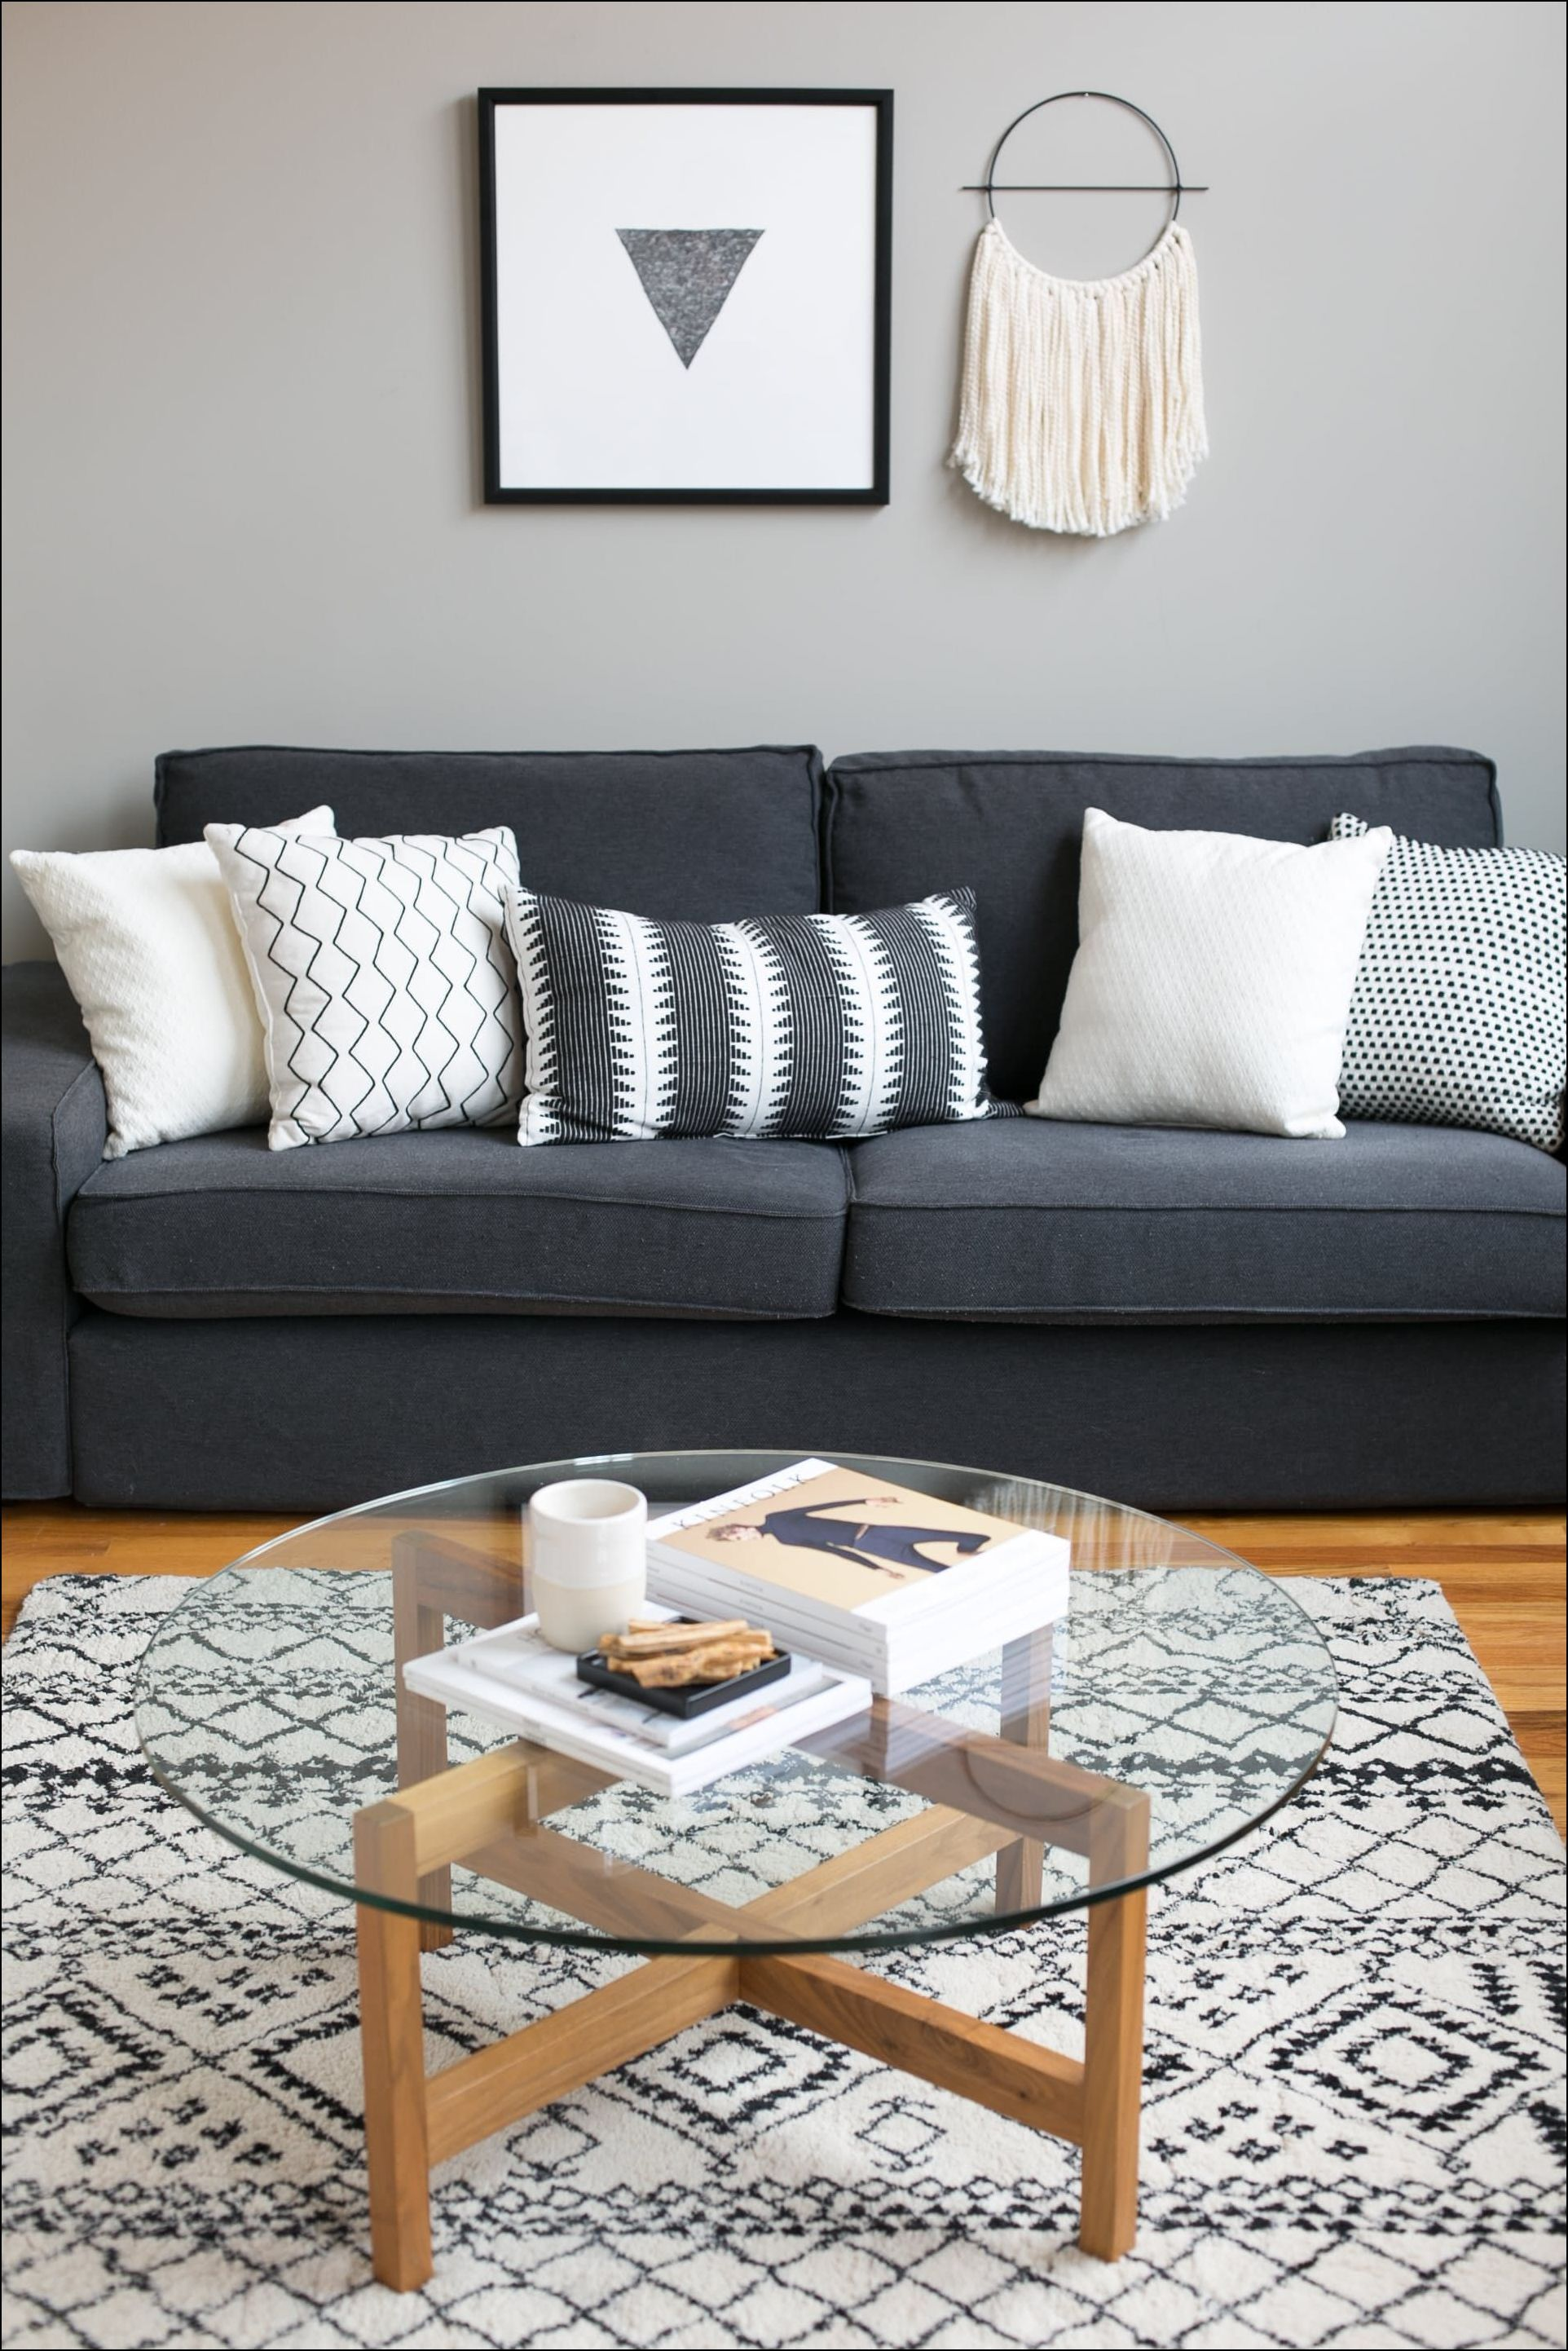 Cushion Ideas For Grey Sofa Couches Living Room Living Room Grey Minimalist Living Room